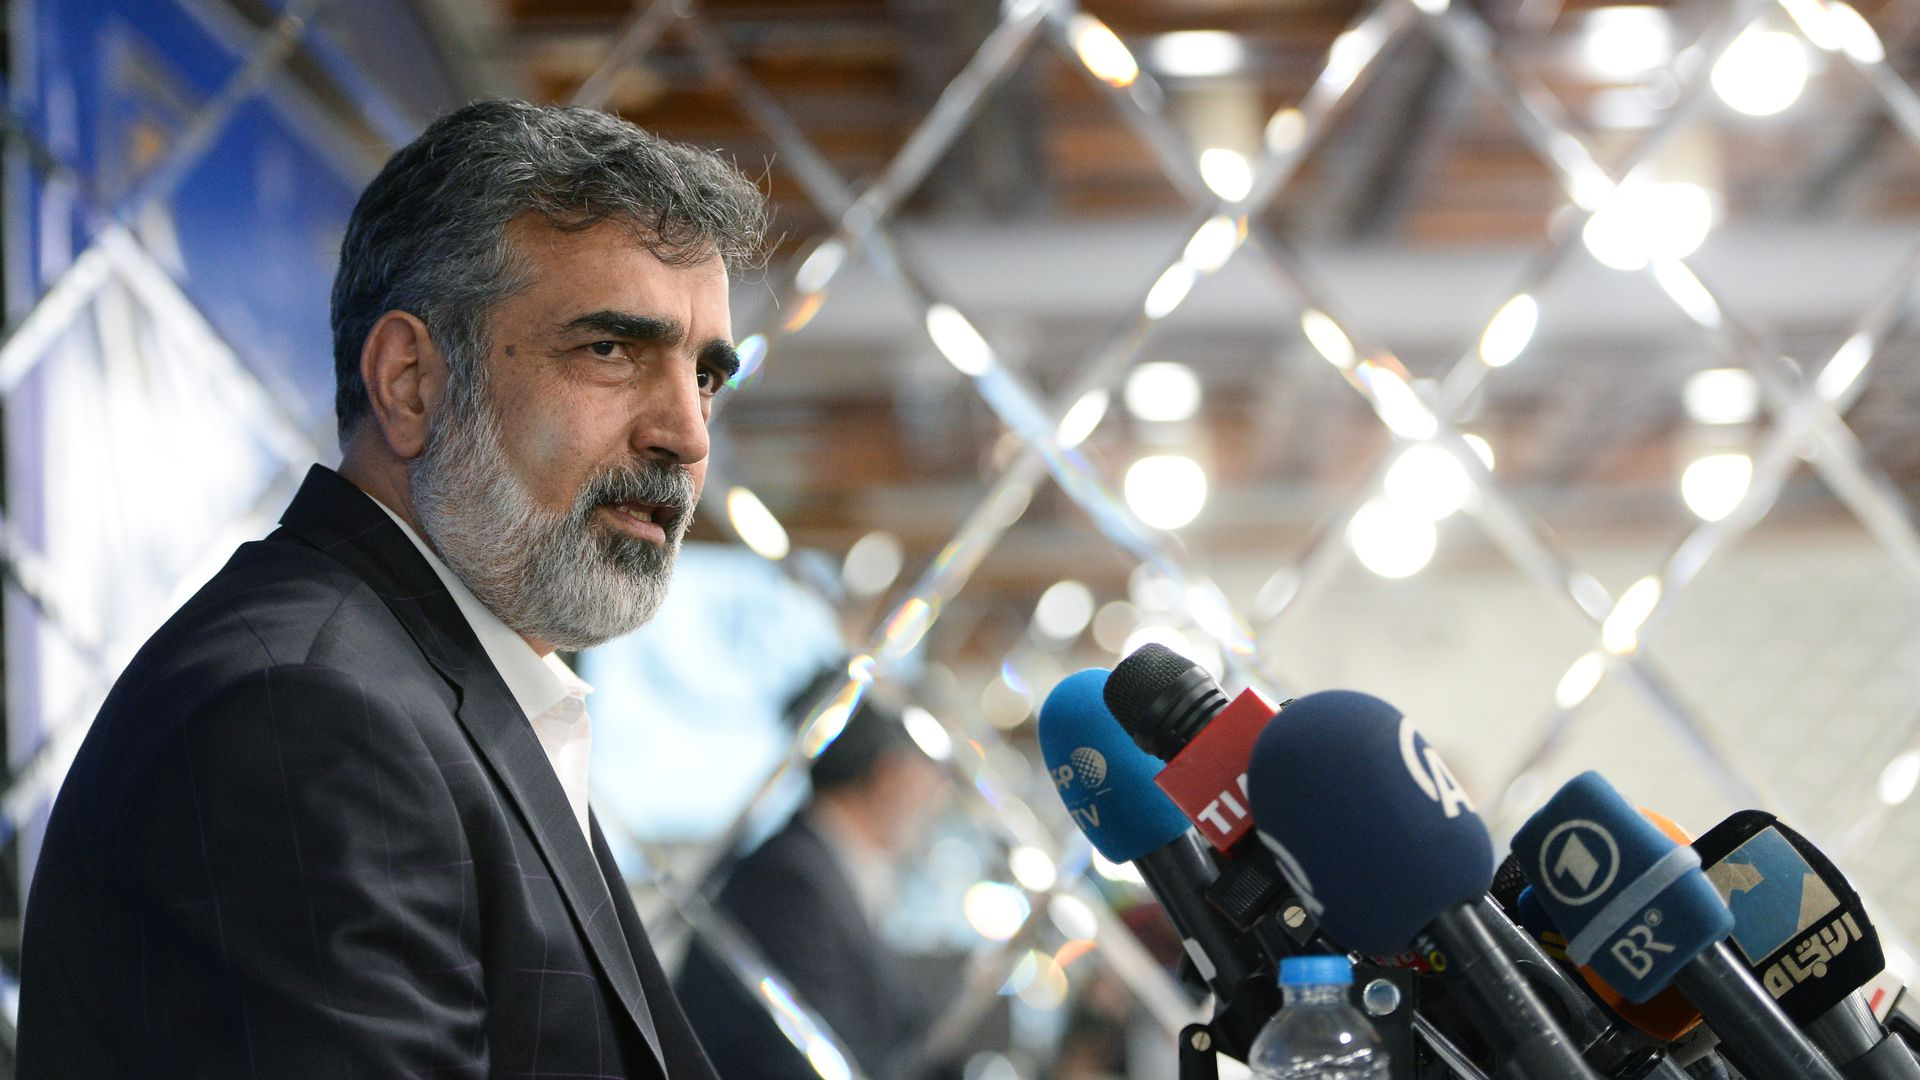 spokesman for Iran's atomic energy agency in front of microphones at a press conference